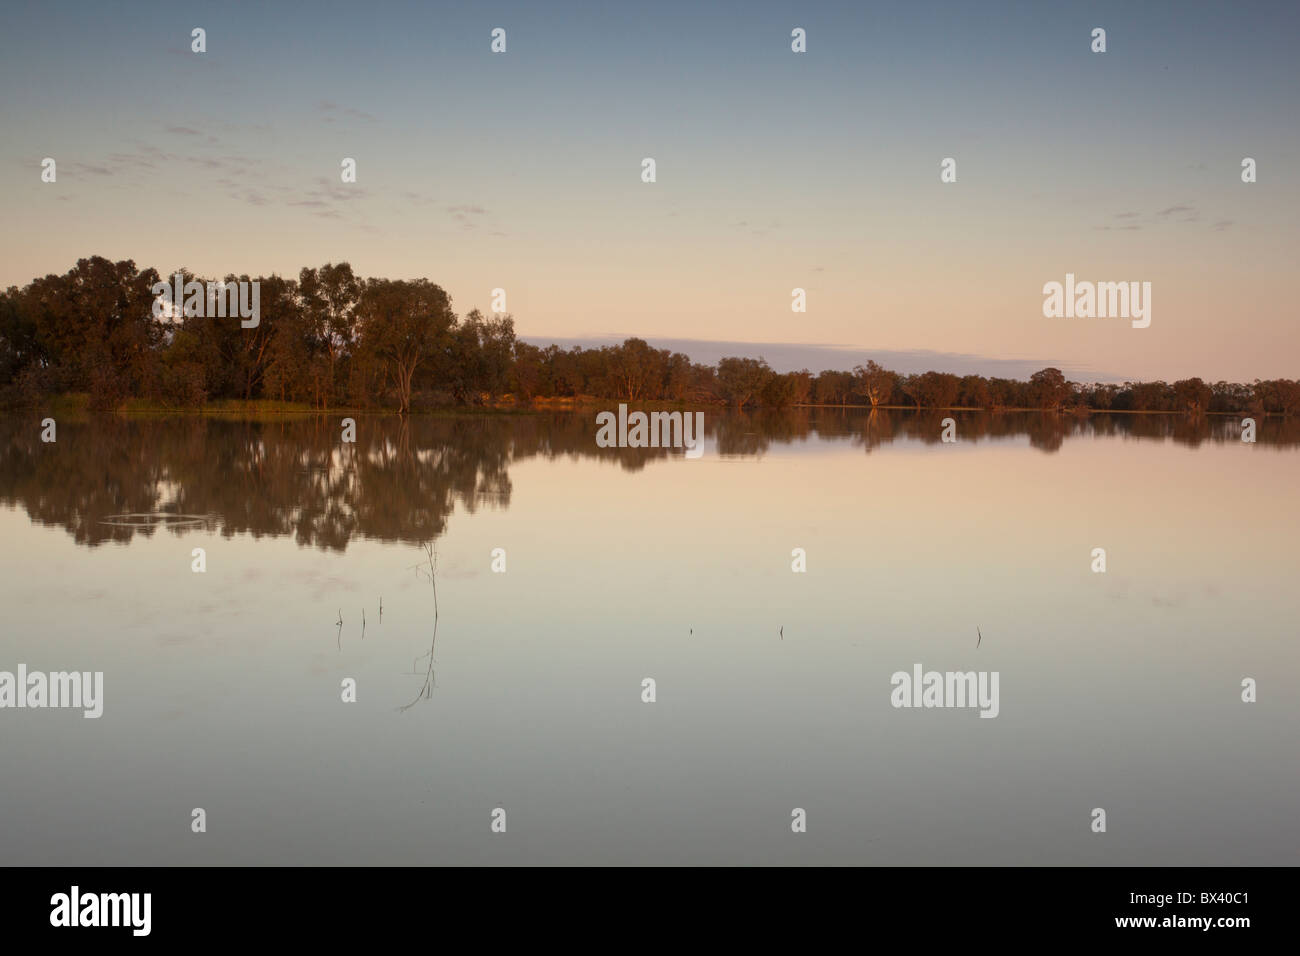 Early morning reflections over the lake at Copi Hollow, Menindee, Broken Hill, New South Wales - Stock Image